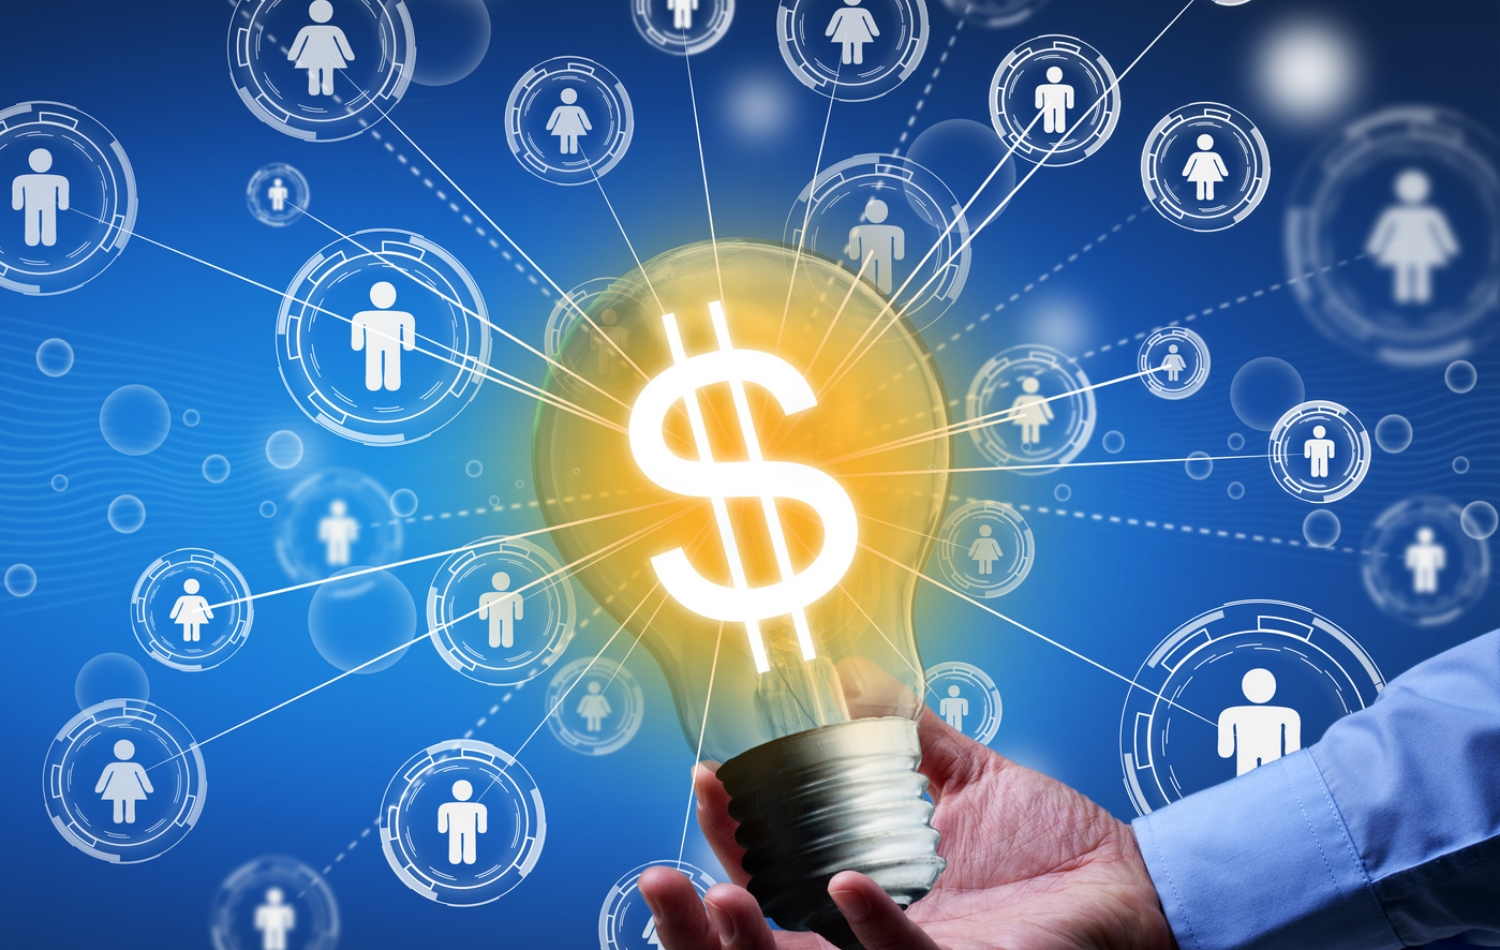 Crowdfunding or community funding concept